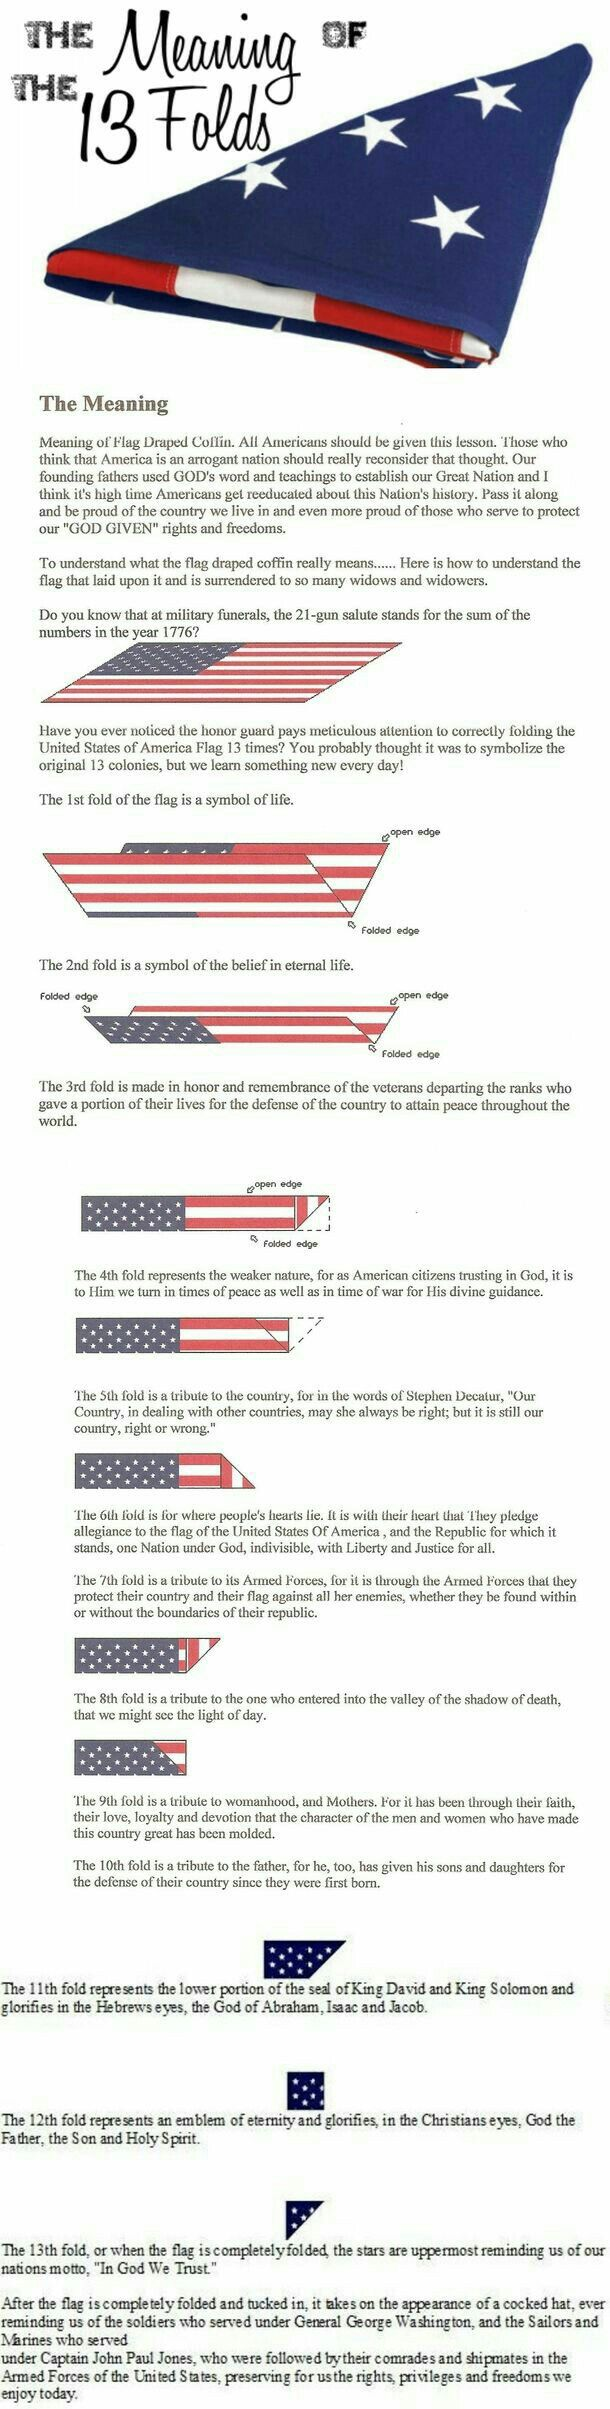 Why the United States flag gets folded the way it does